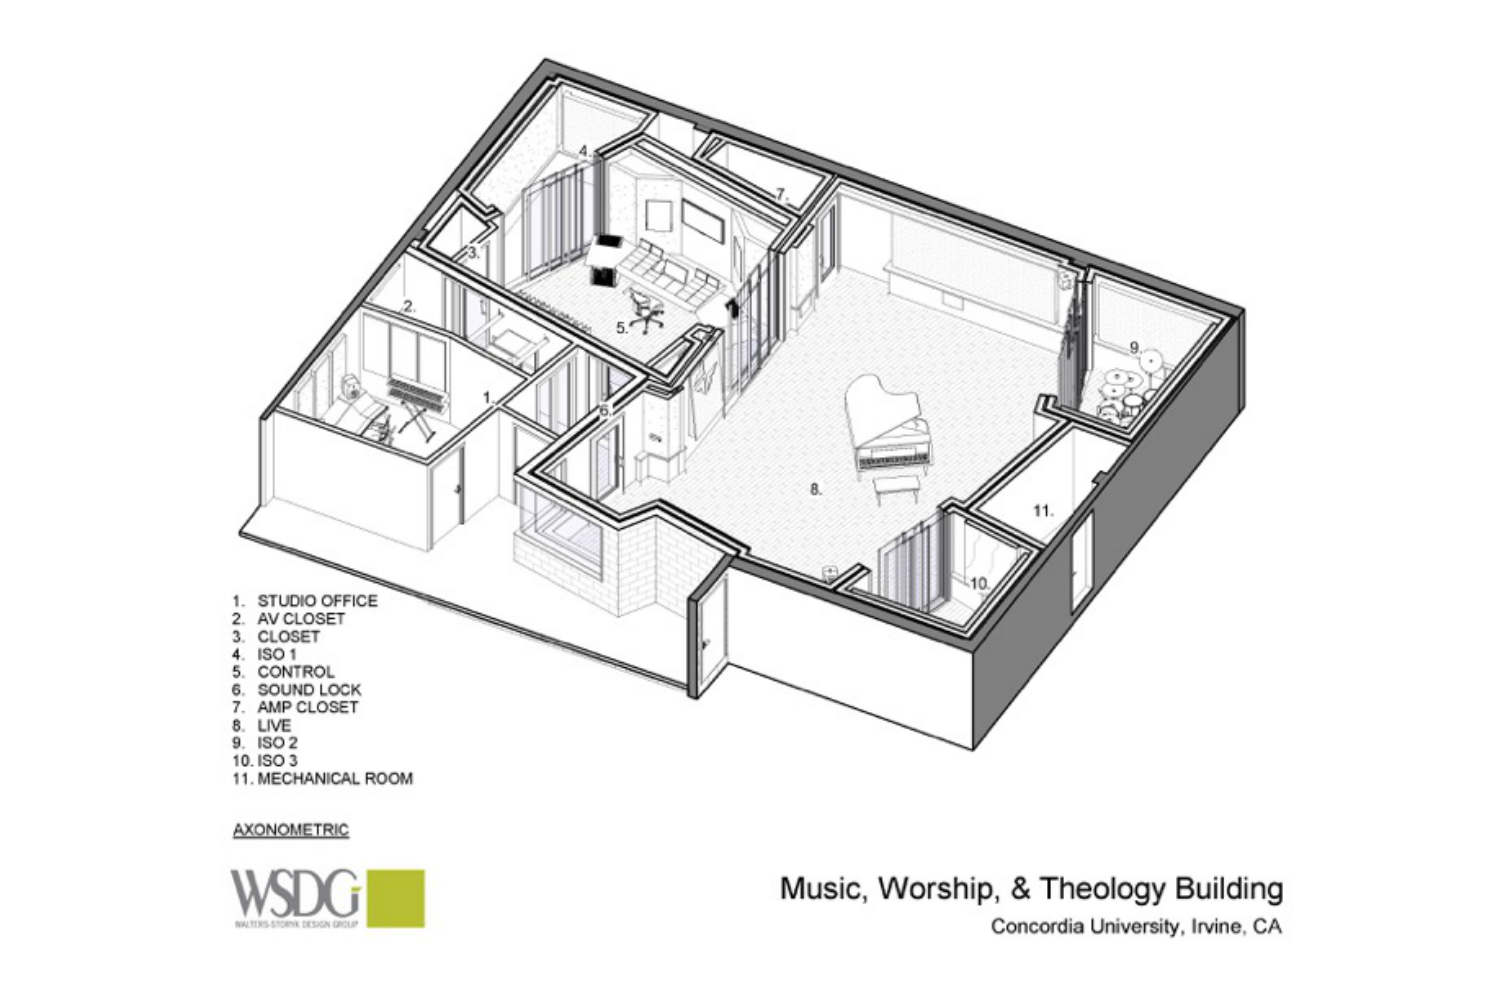 Concordia University Irvine, WSDG was commissioned for the design and acoustics of the facility. Presentation Drawing 1